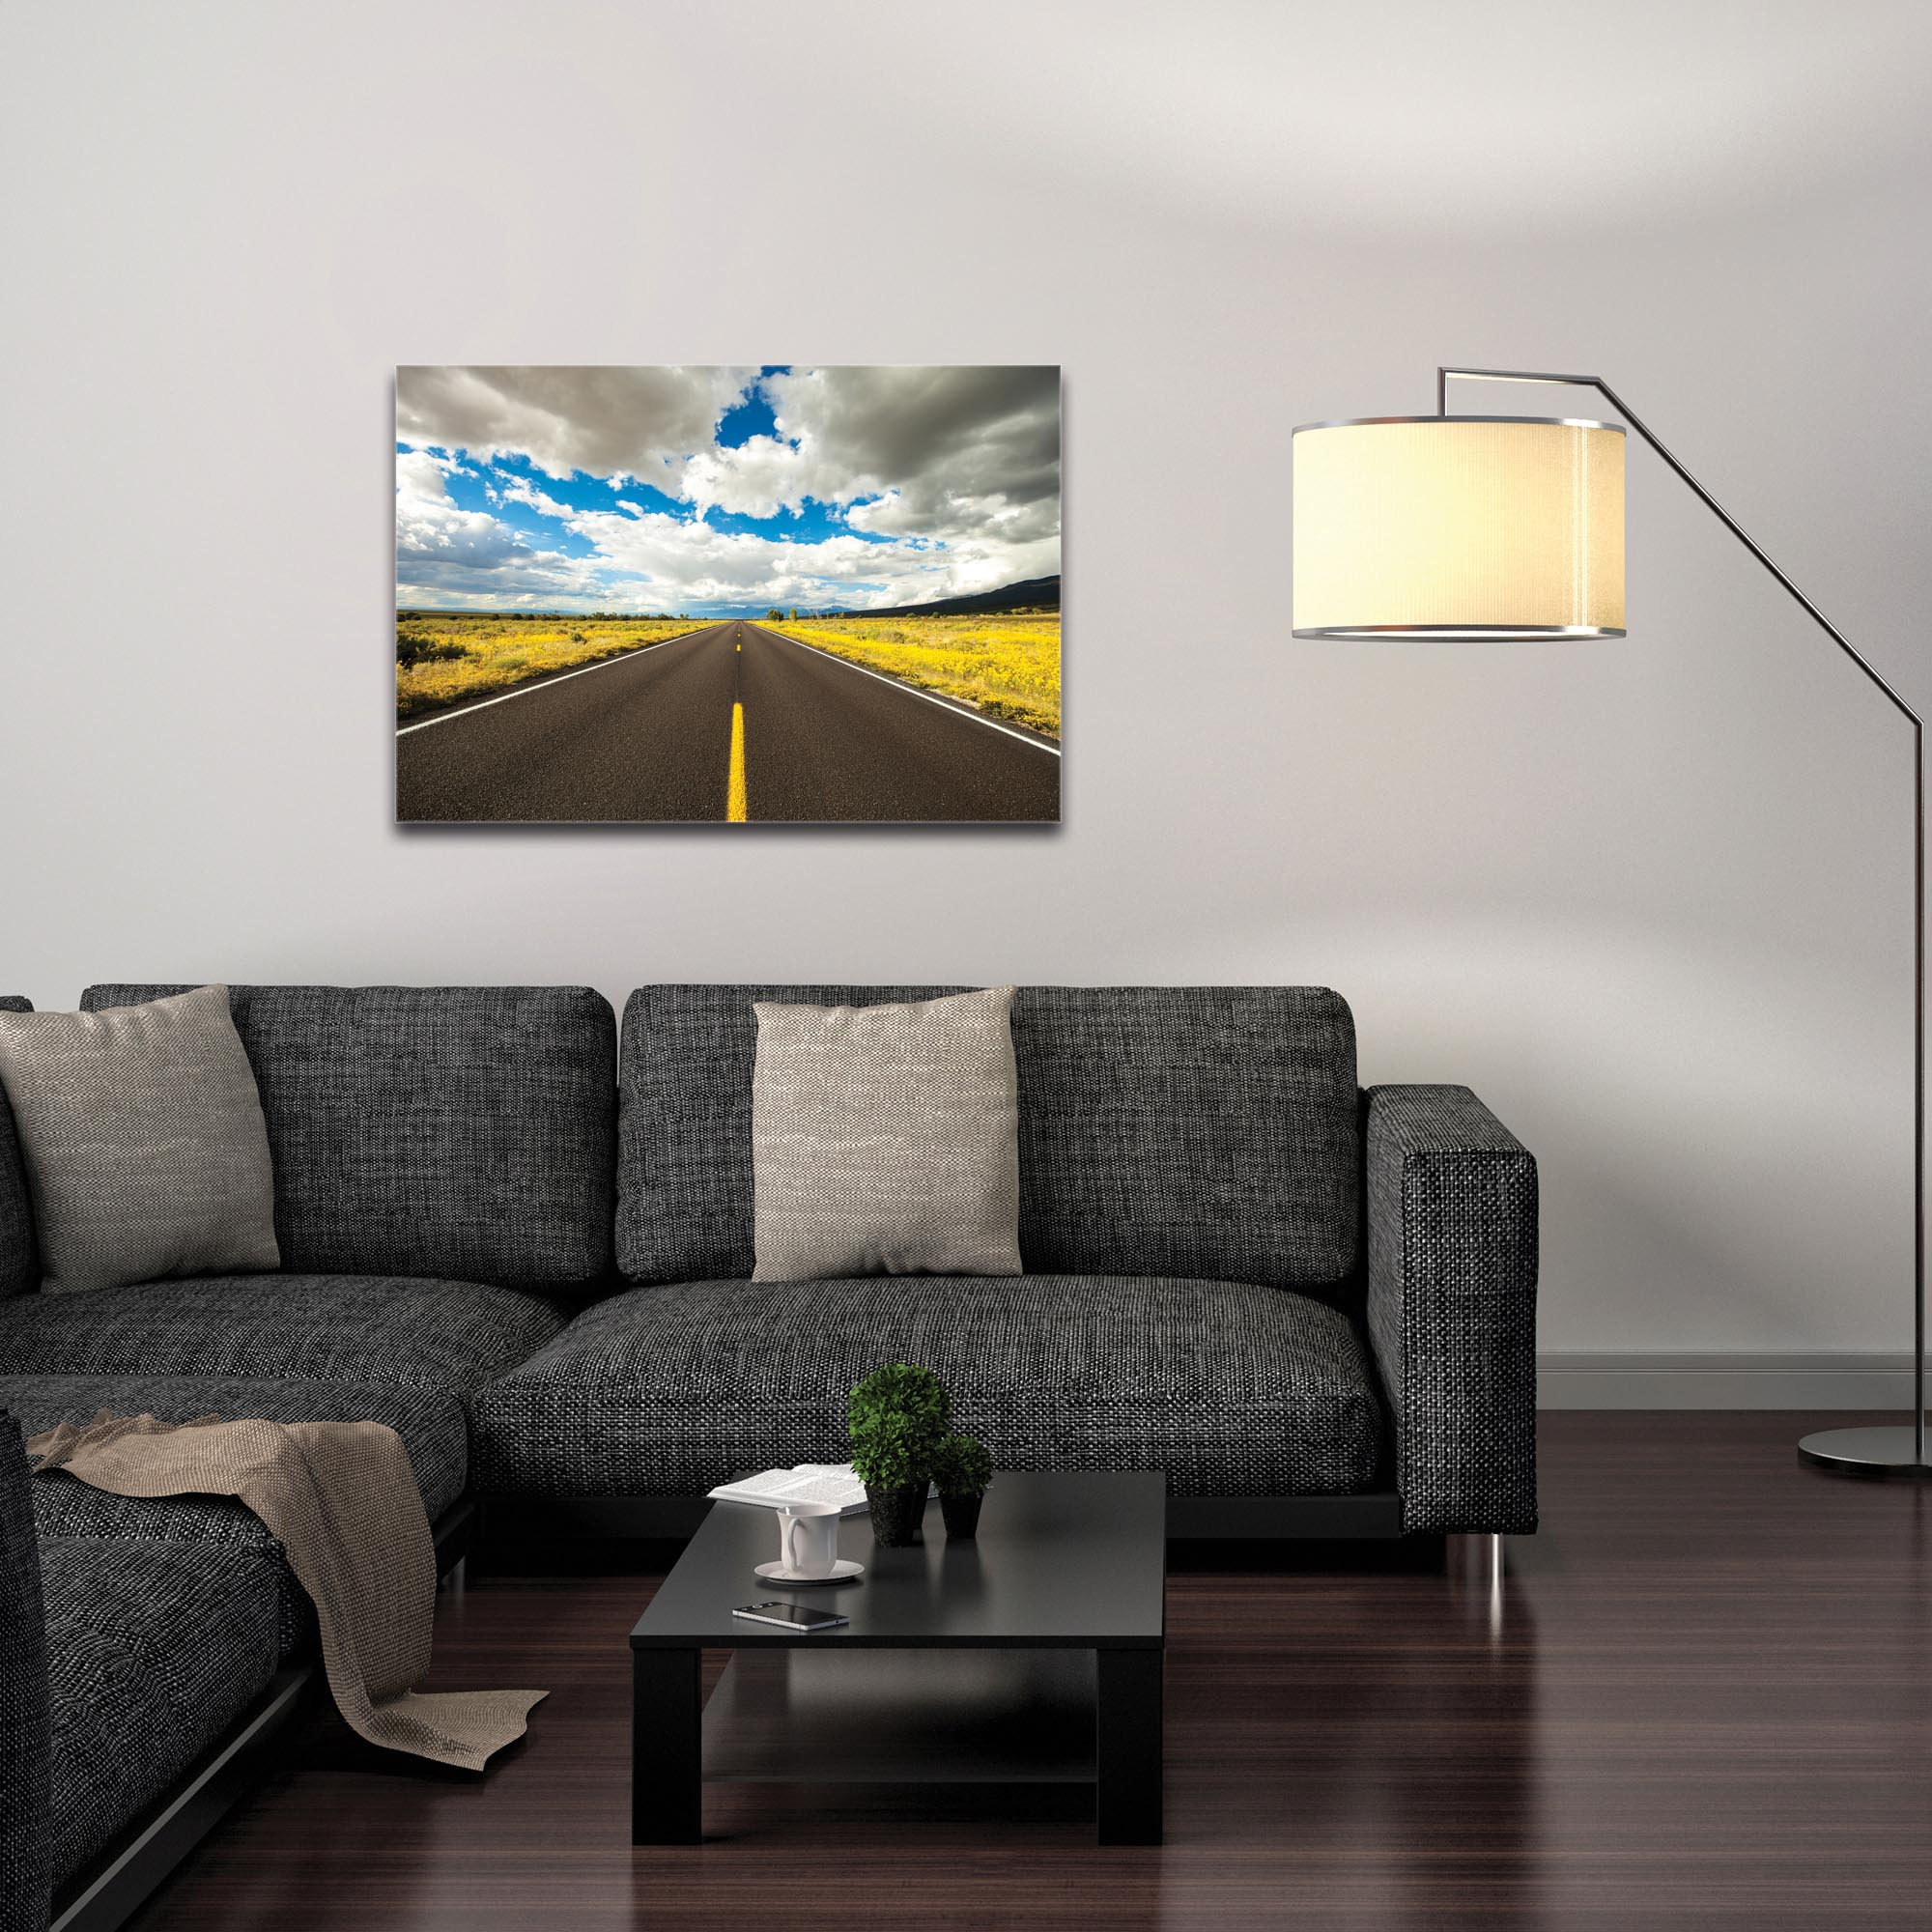 Americana Wall Art 'Road Trip' - Open Road Decor on Metal or Plexiglass - Image 3